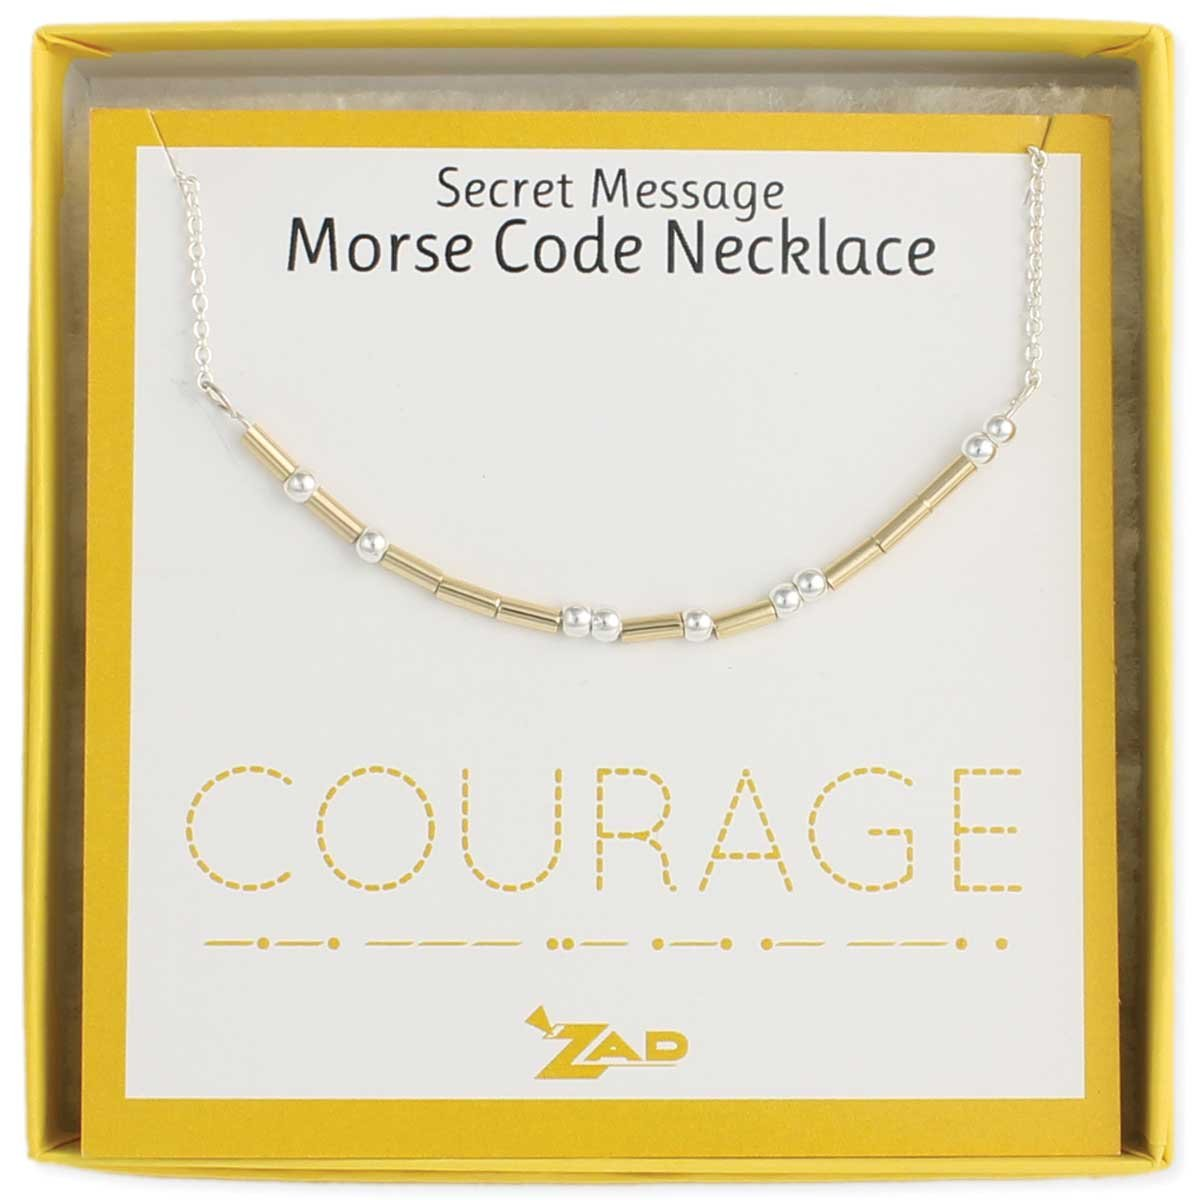 "Zen Styles Morse Code Necklace of 'COURAGE' - Inspirational Jewelry Secret Message Box Chain Necklace, Two-Tone, Adjustable 16'' - 18"" Inches"